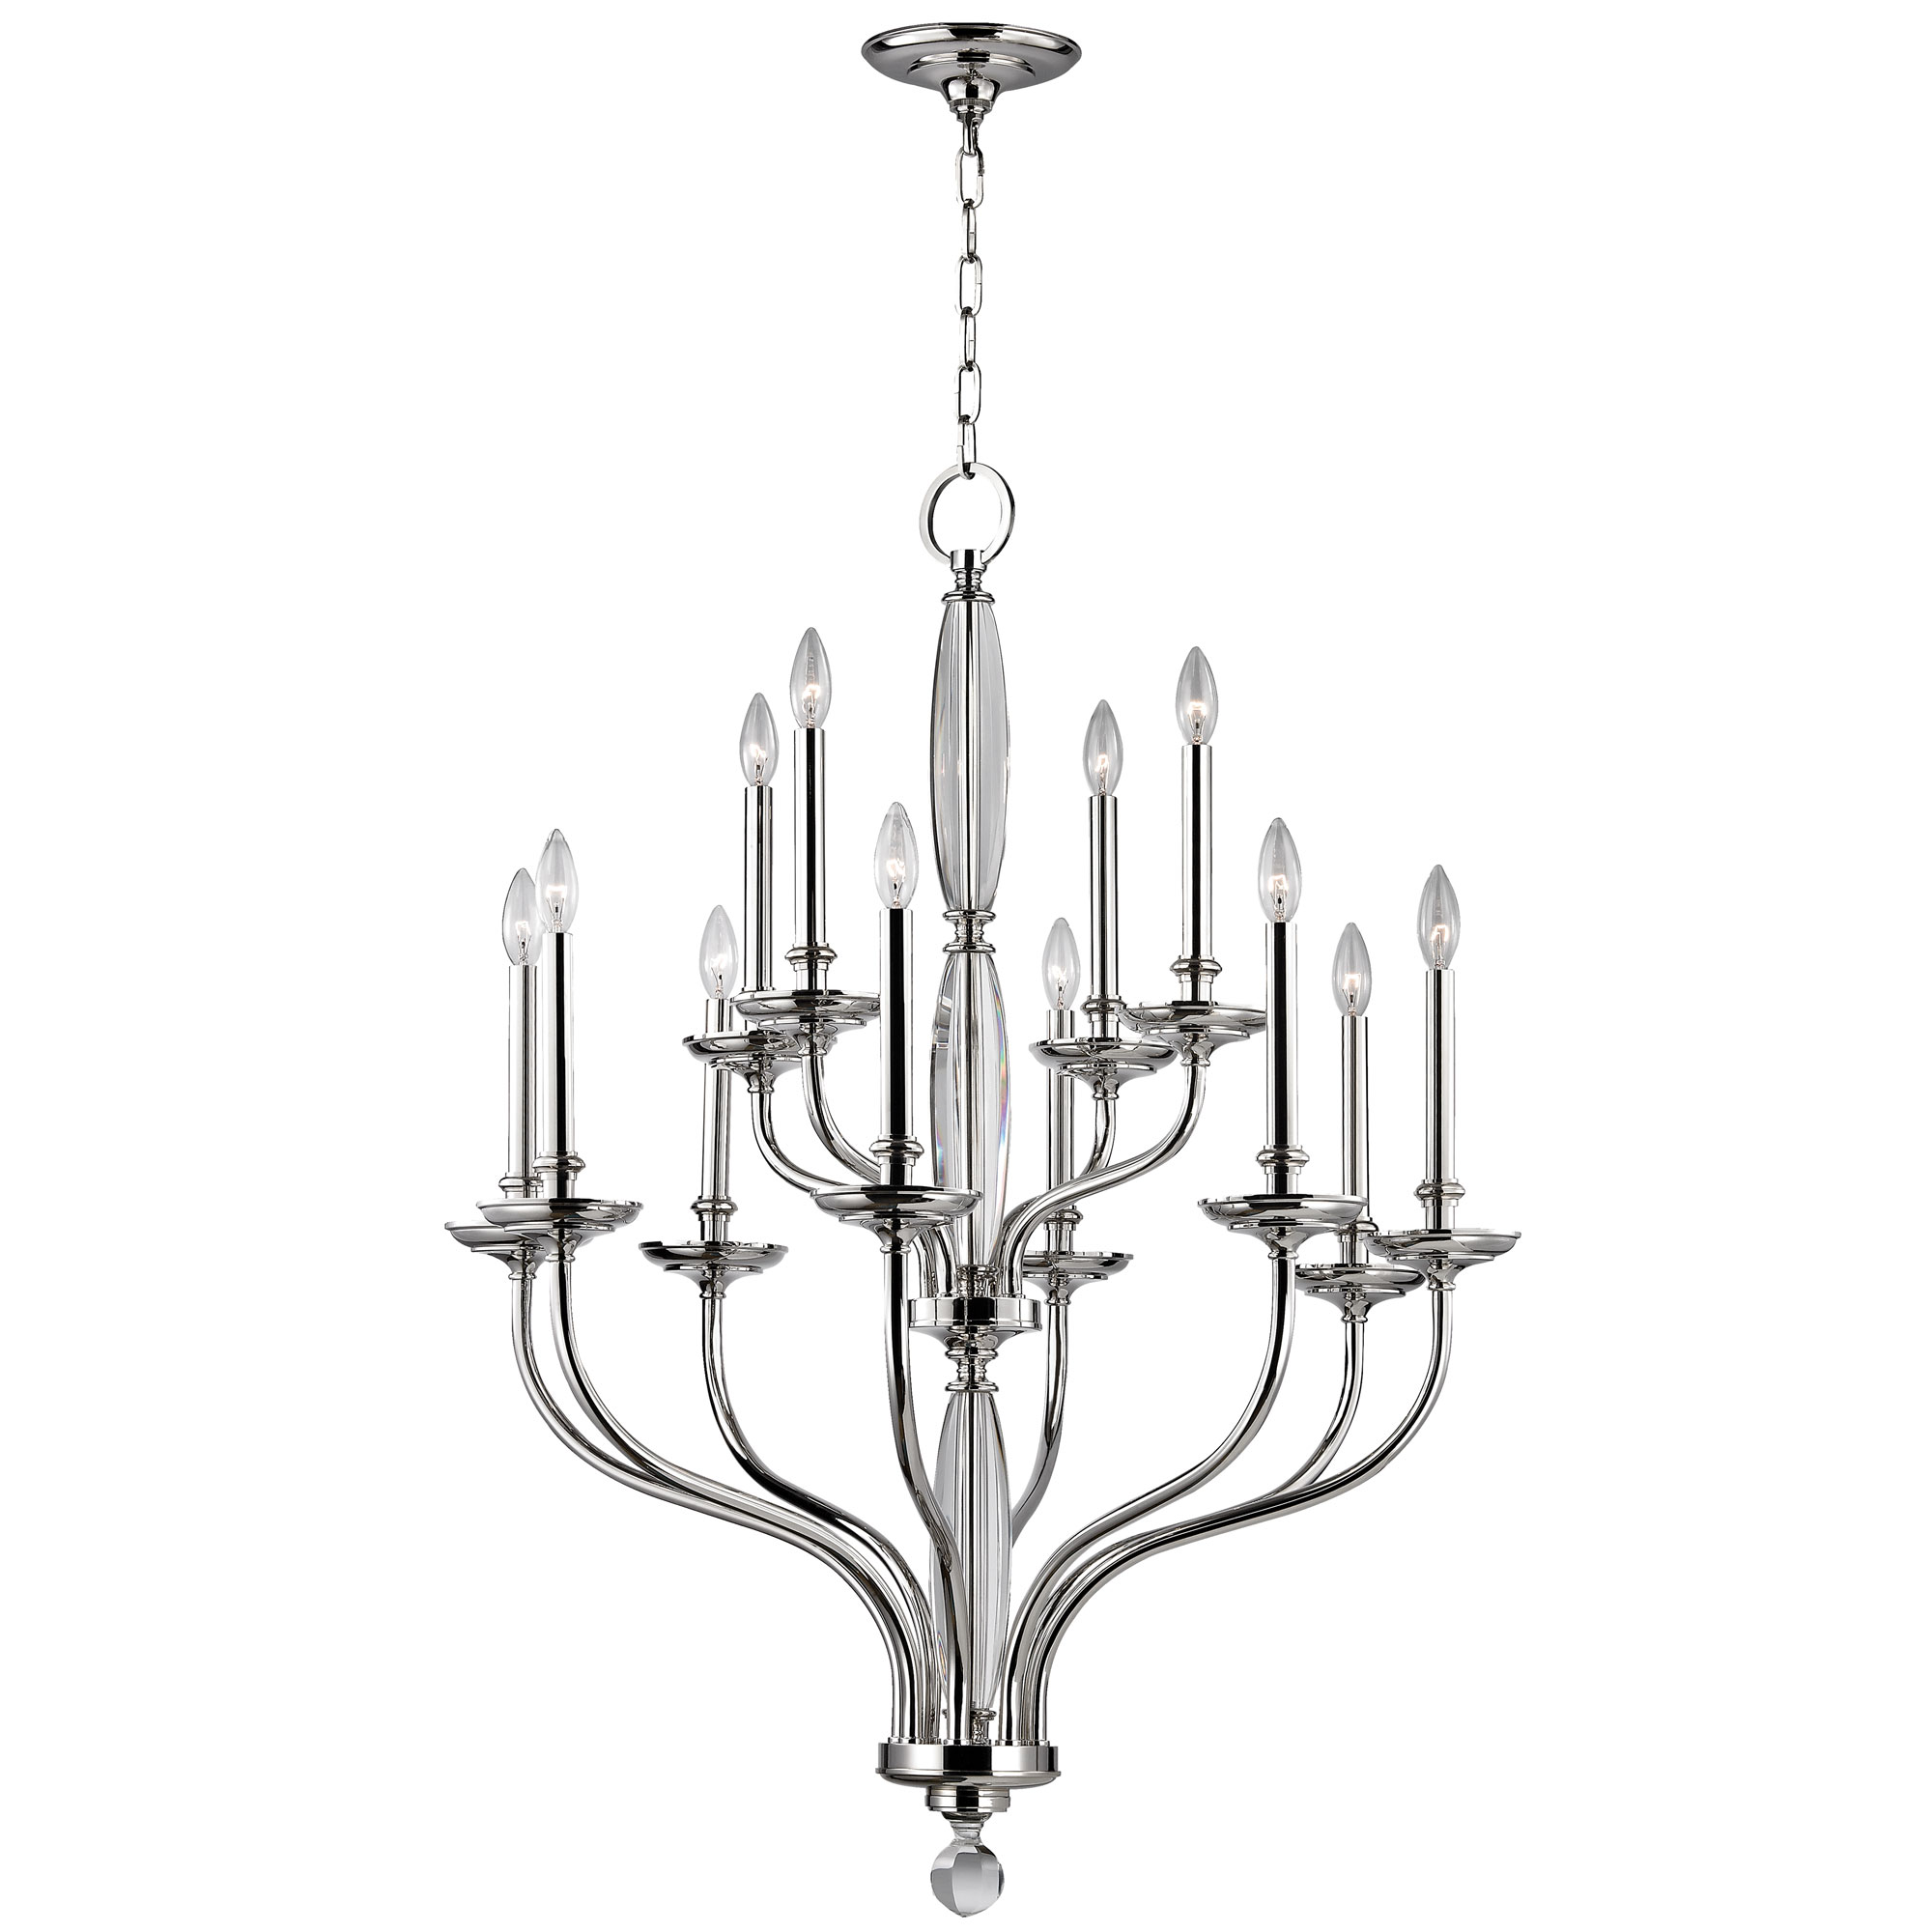 Chandelier by hudson valley lighting 6434 pn lauderhill chandelier by hudson valley lighting 6434 pn arubaitofo Choice Image